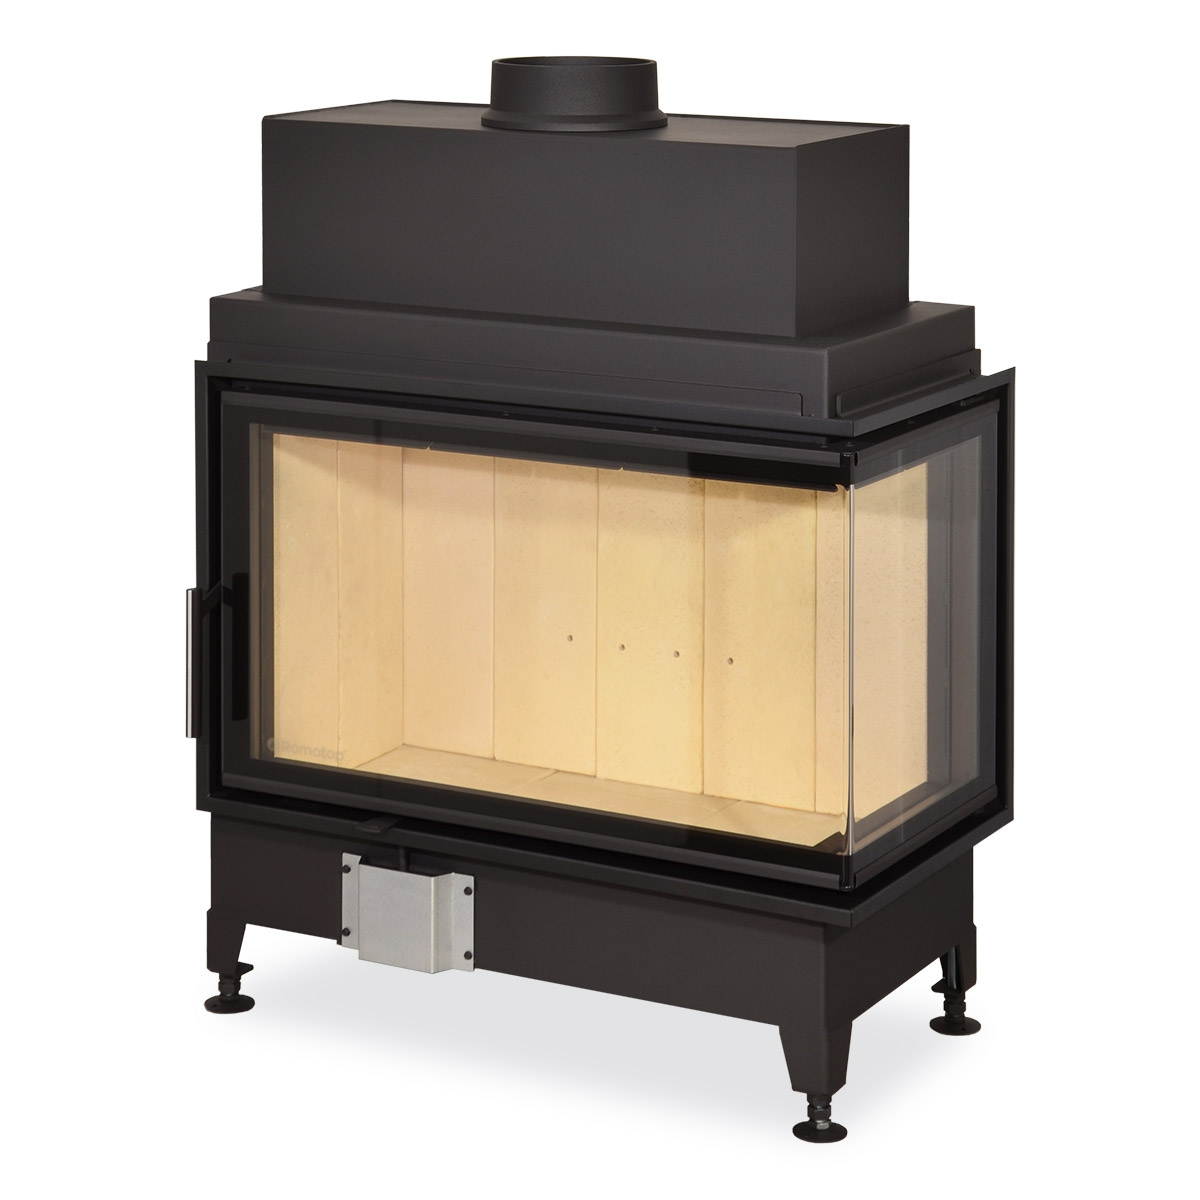 HEAT R/L 2g S 81.51.40.01 - hot-air corner fireplace insert with bent glazing